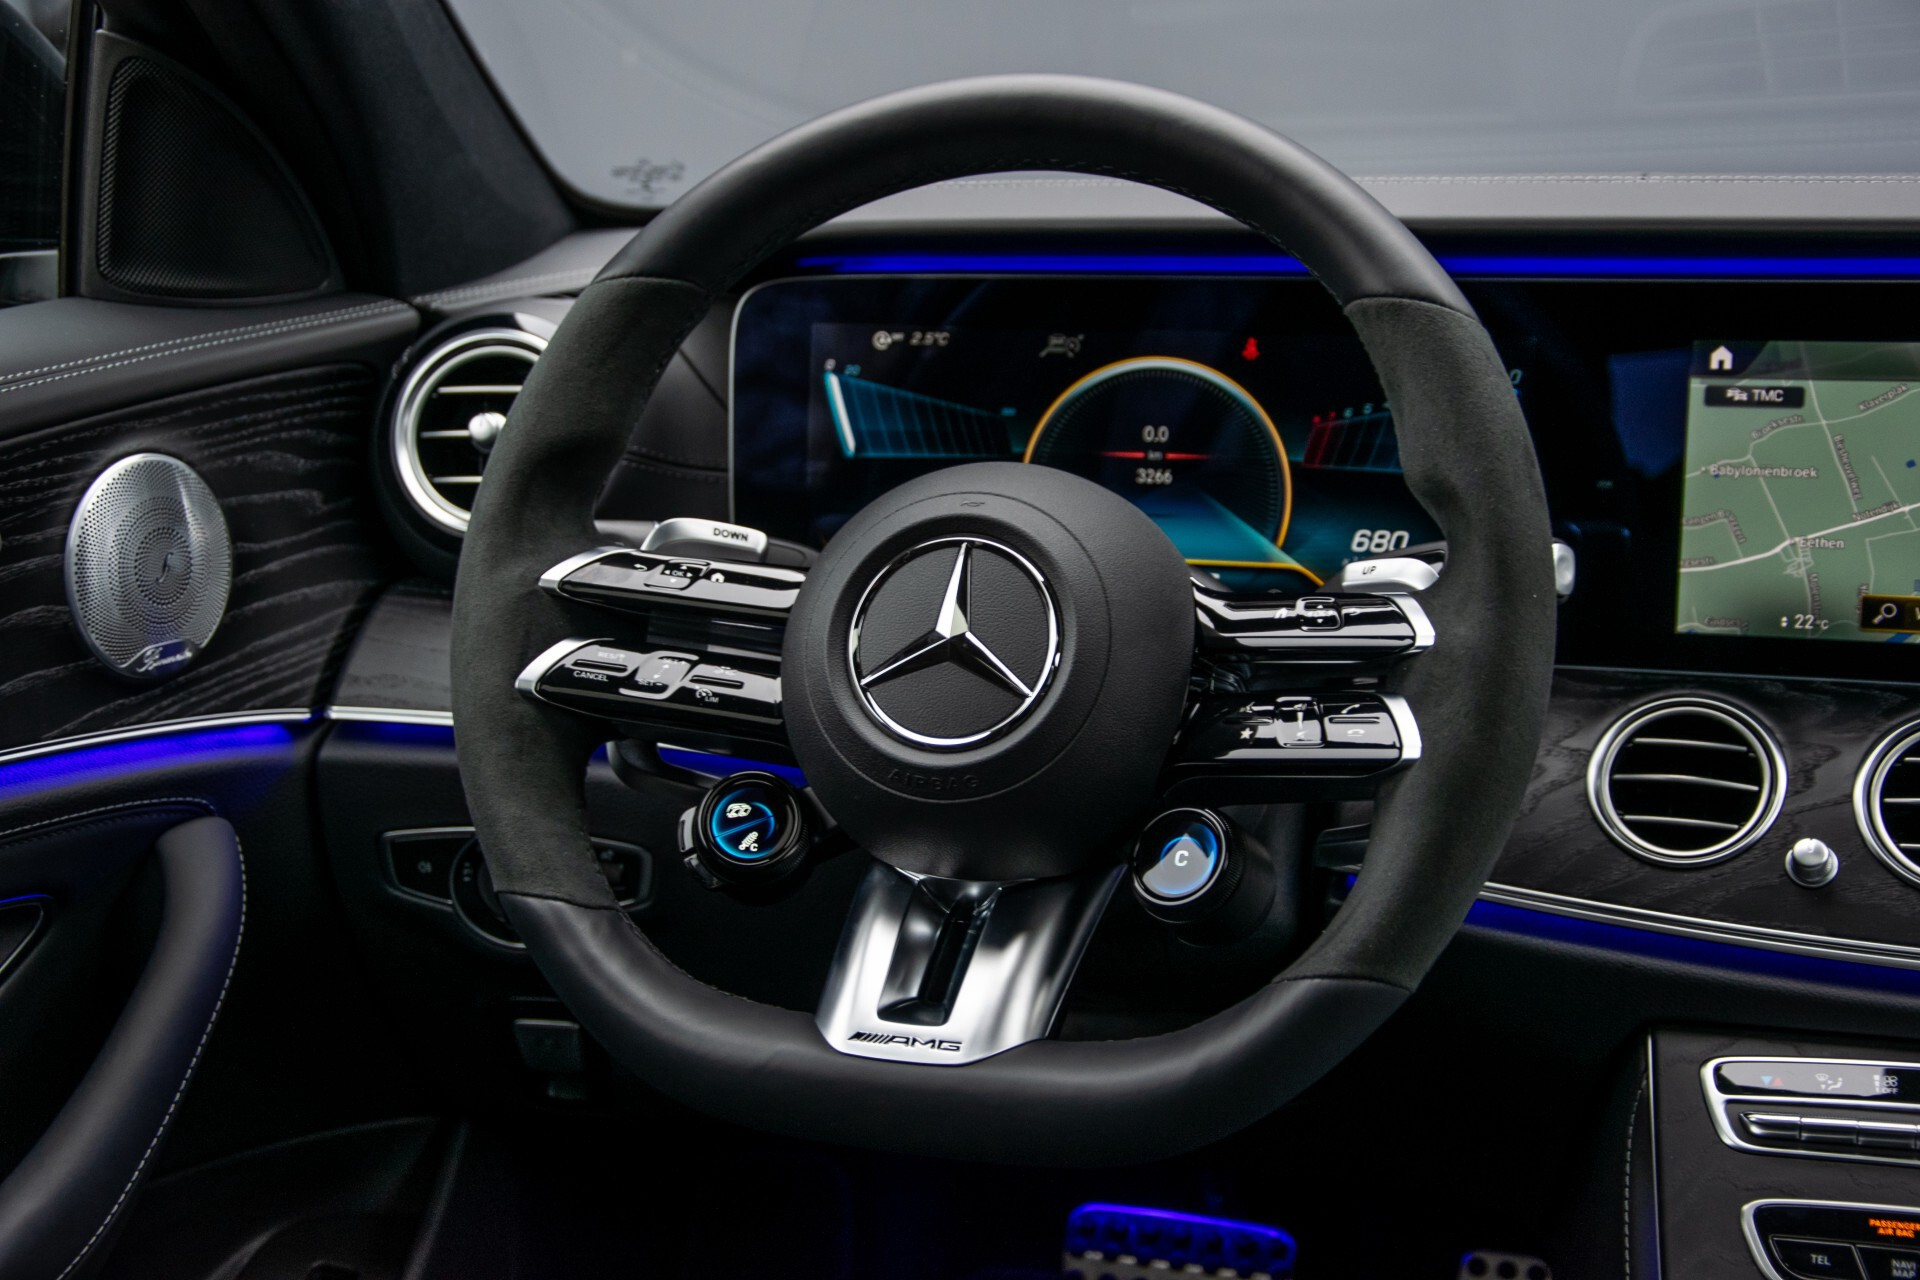 Mercedes-Benz E-Klasse 63 S AMG 4M+ NIEUW MODEL Night/Massage/Rij-assist/Keyless/Hud Aut9 Foto 8